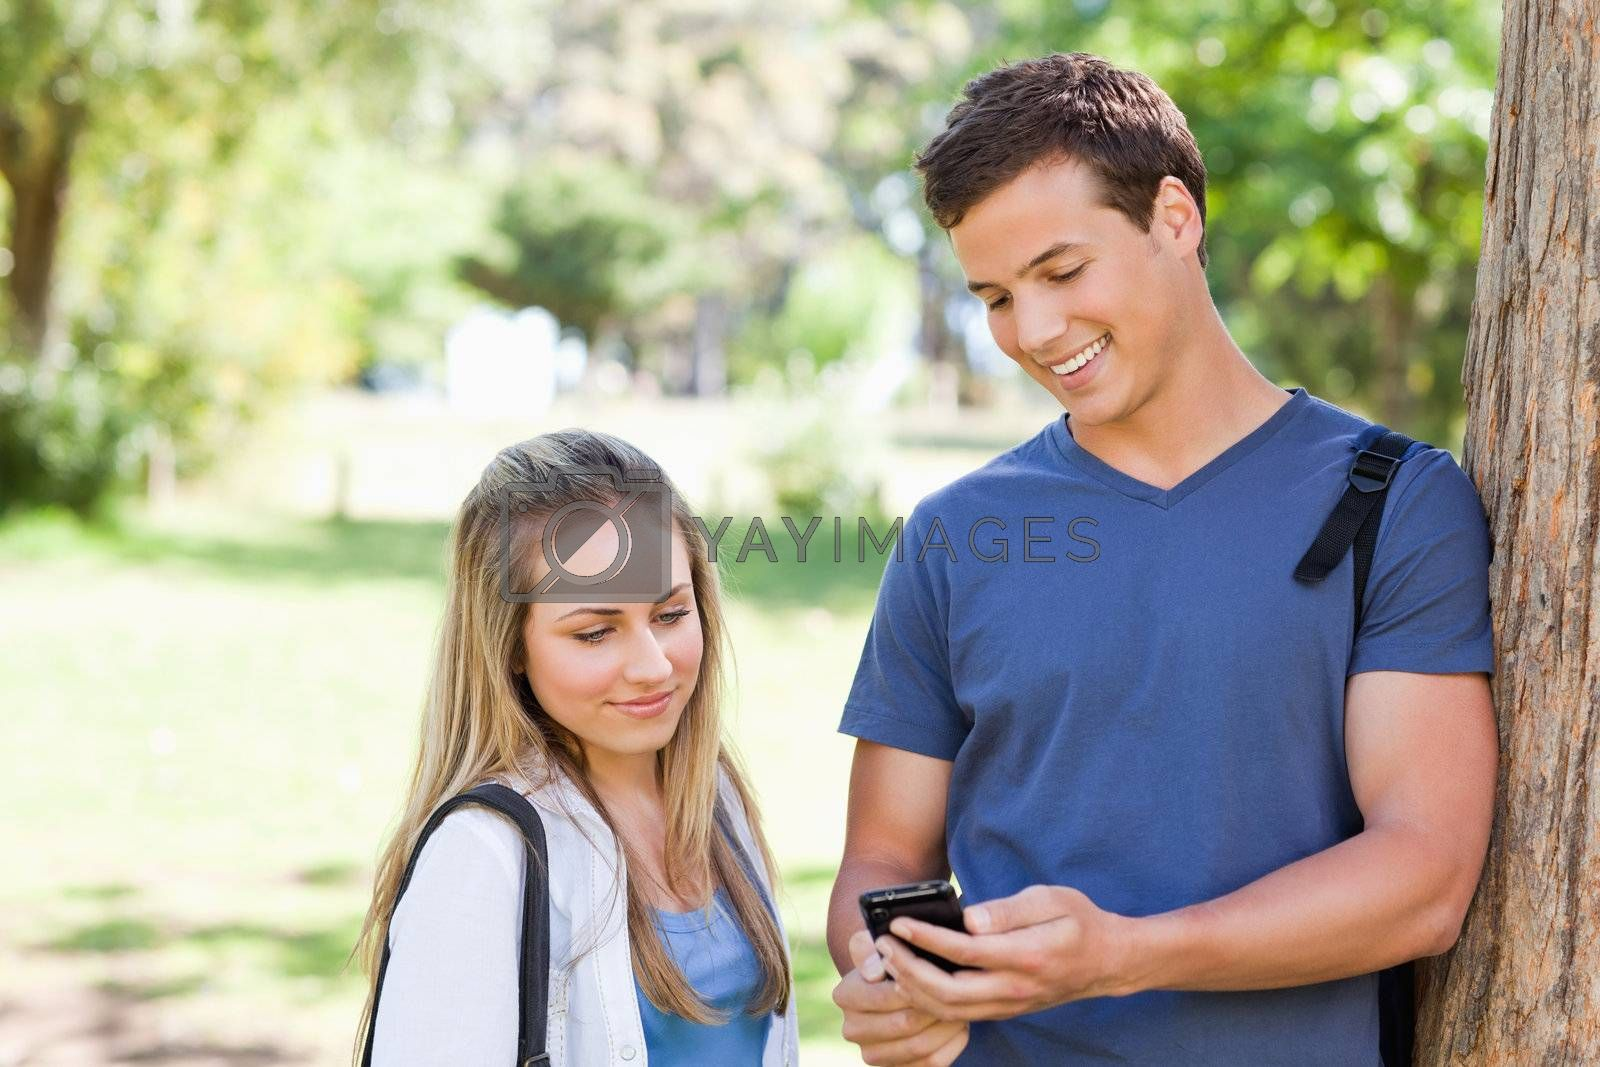 Close-up of a student showing his smartphone screen to a girl in a park